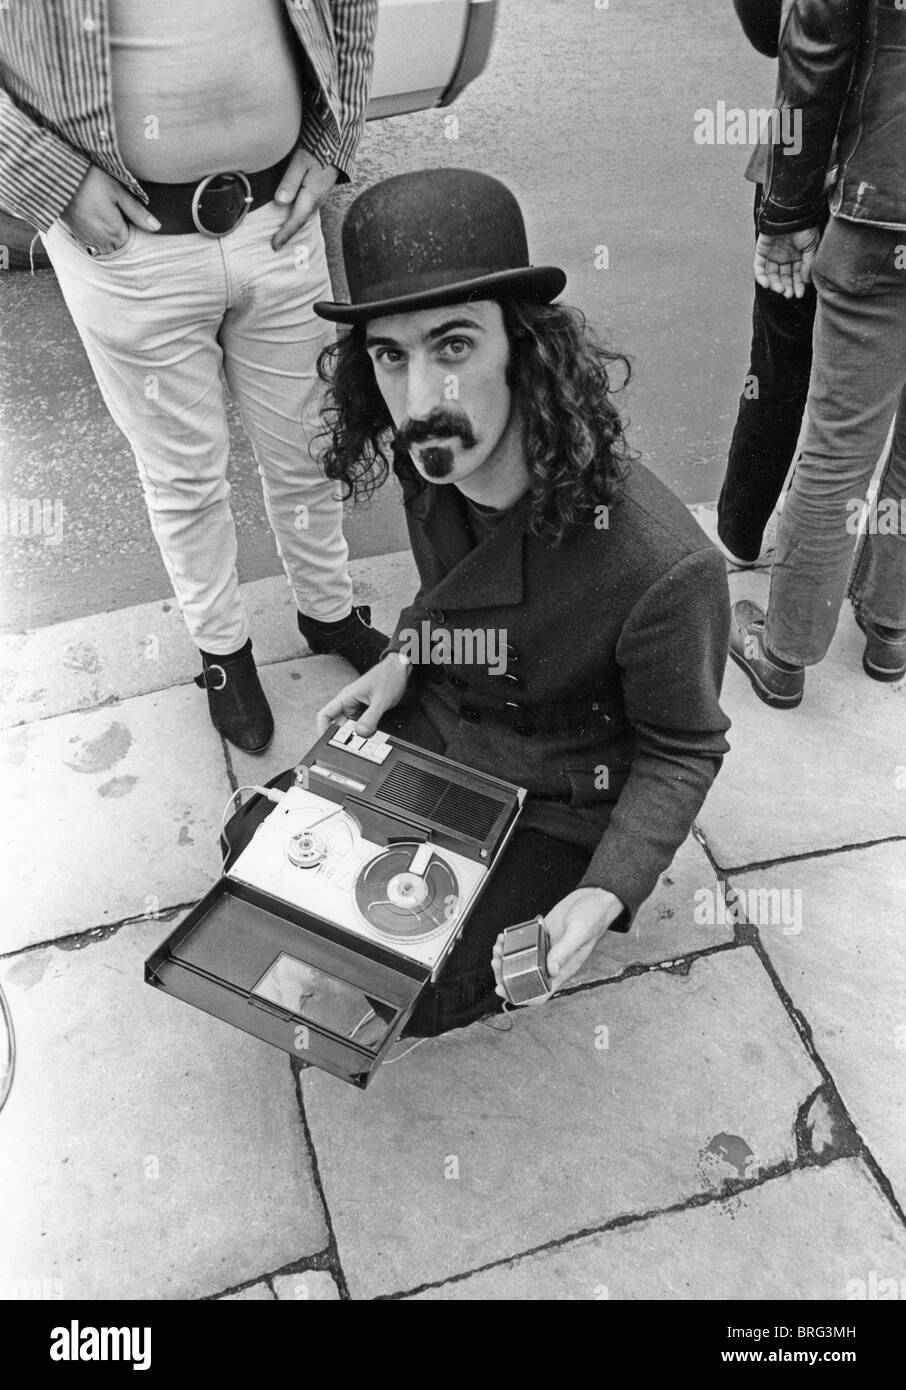 frank-zappa-us-rock-musician-having-fun-with-street-recordings-in-BRG3MH.jpg